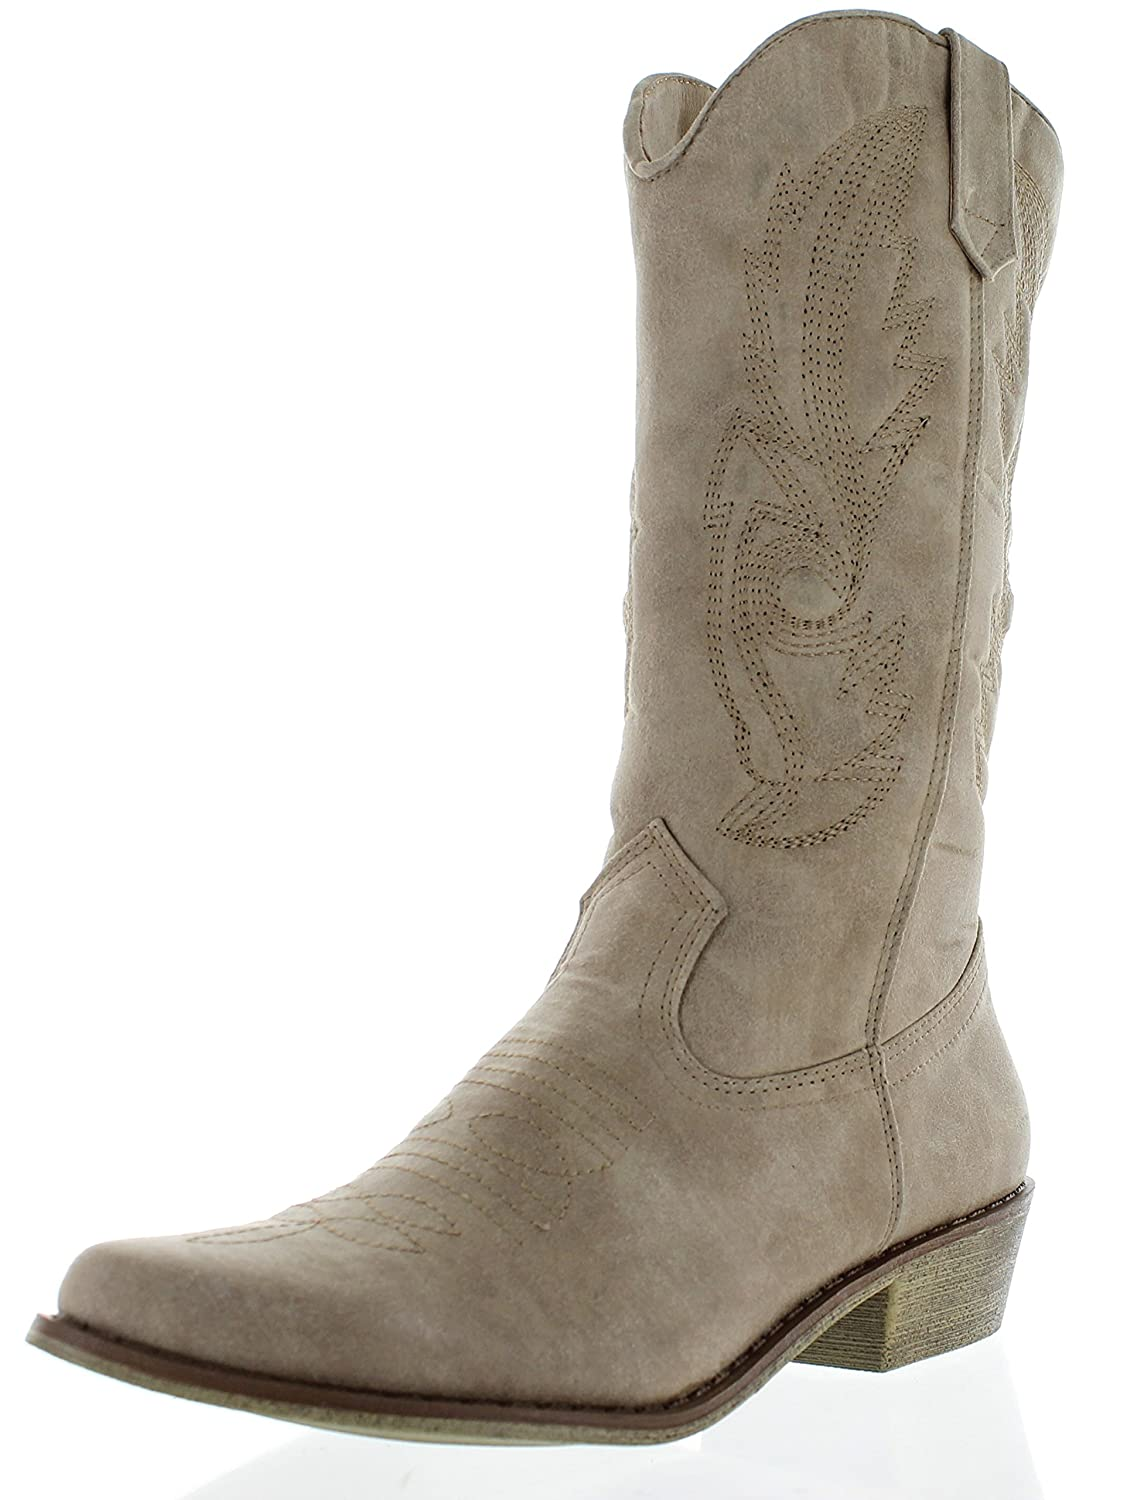 Coconuts by Matisse Women's Gaucho Boot B01NBRCKDB 8 B(M) US|Taupe